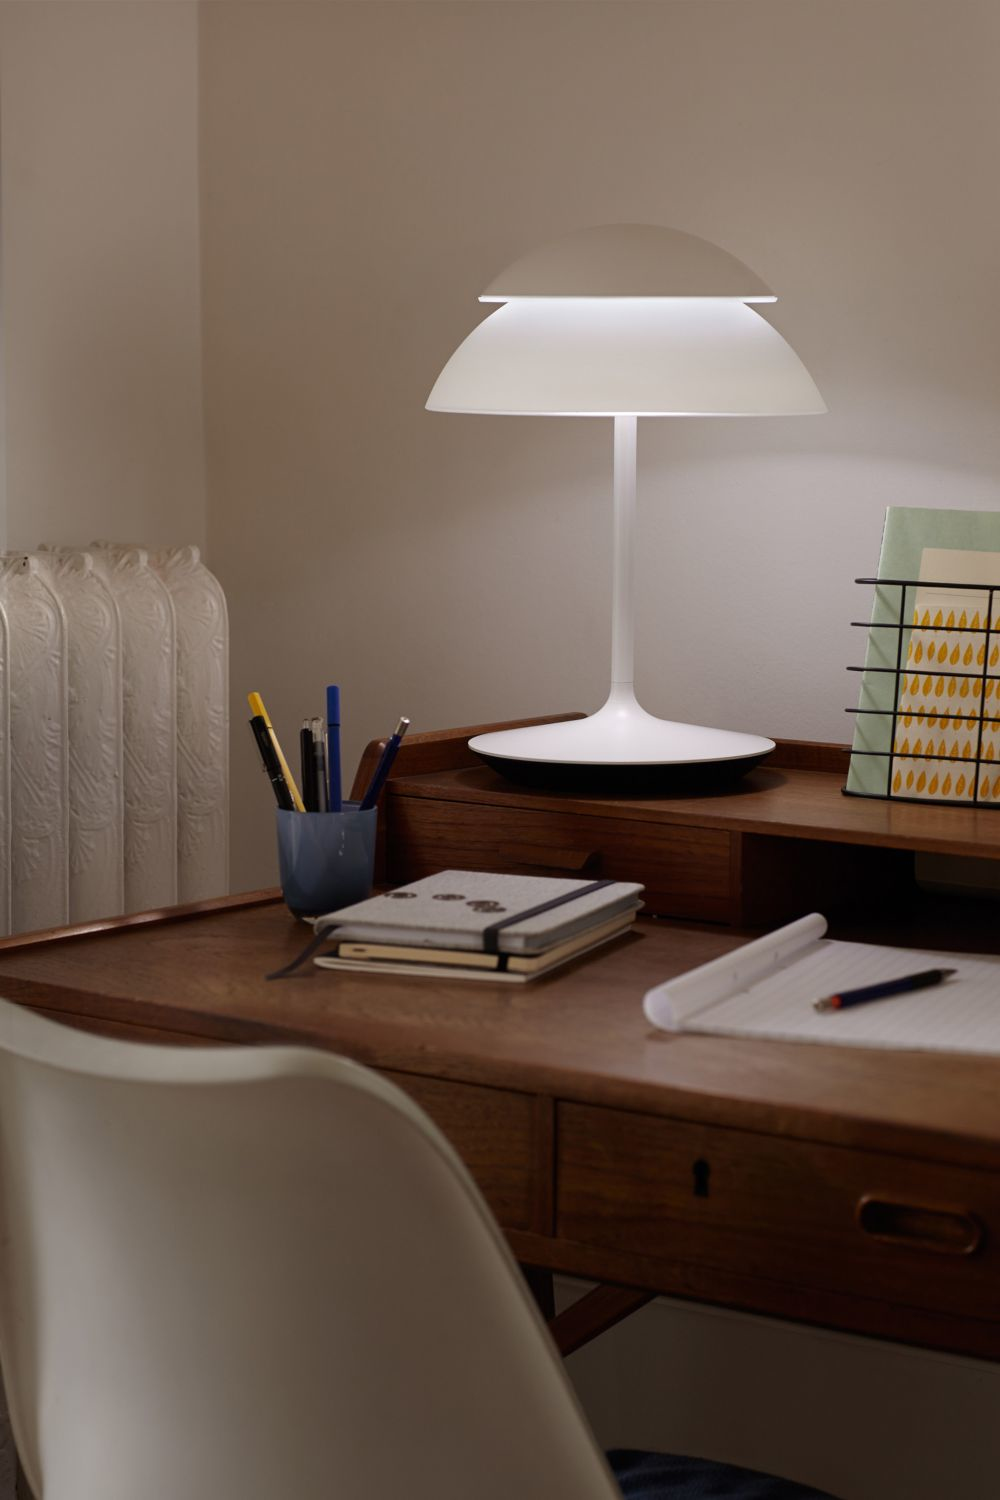 philips led connected lampe hue beyond tischleuchte starter set smart home licht ebay. Black Bedroom Furniture Sets. Home Design Ideas